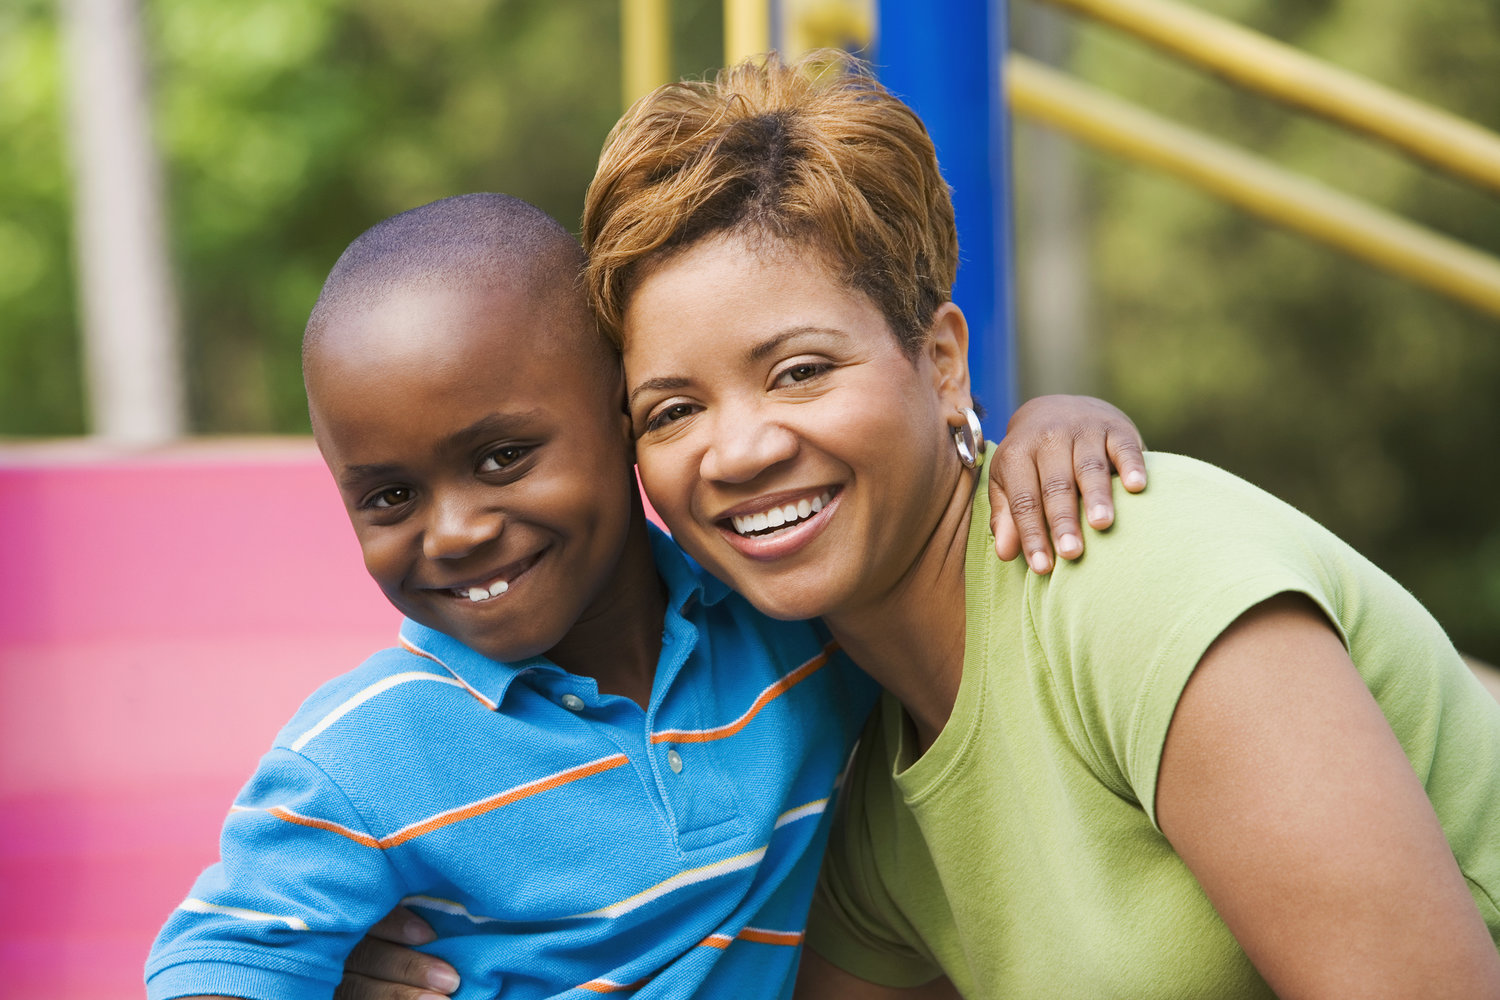 At Healthy Living, we understand the unique needs of our pediatric members and their care teams. Call us at 866.779.8512 to learn more about our Pediatric Diabetes Supply program and to enroll for the great customer service that you deserve.